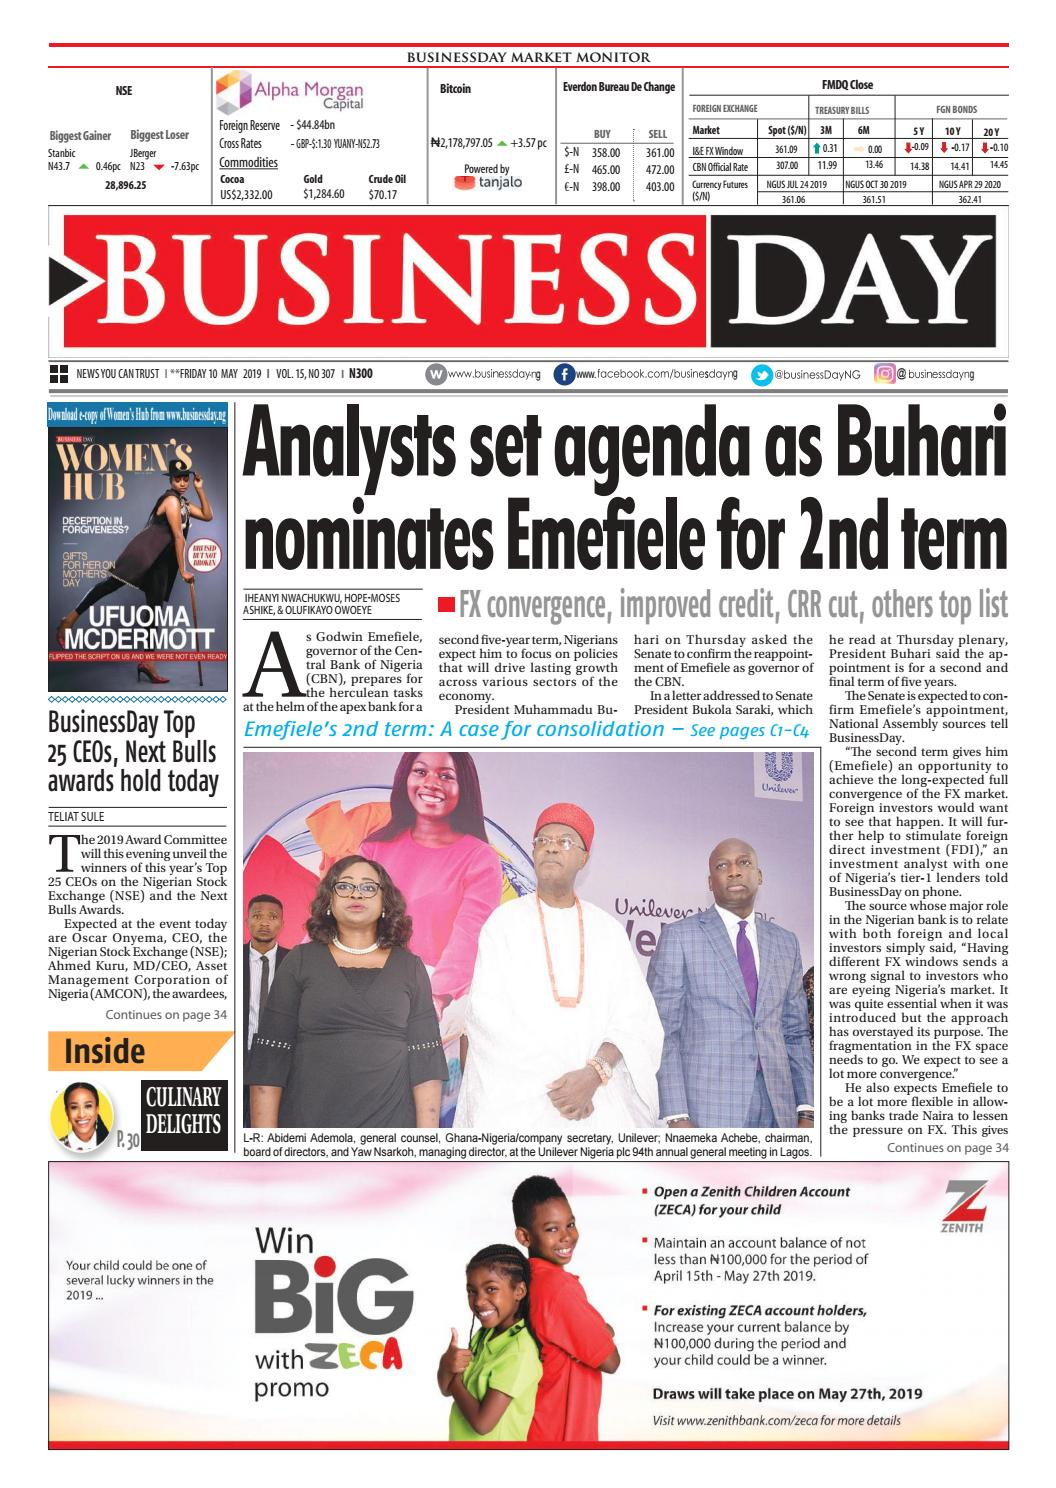 BusinessDay 10 May 2019 by BusinessDay - issuu